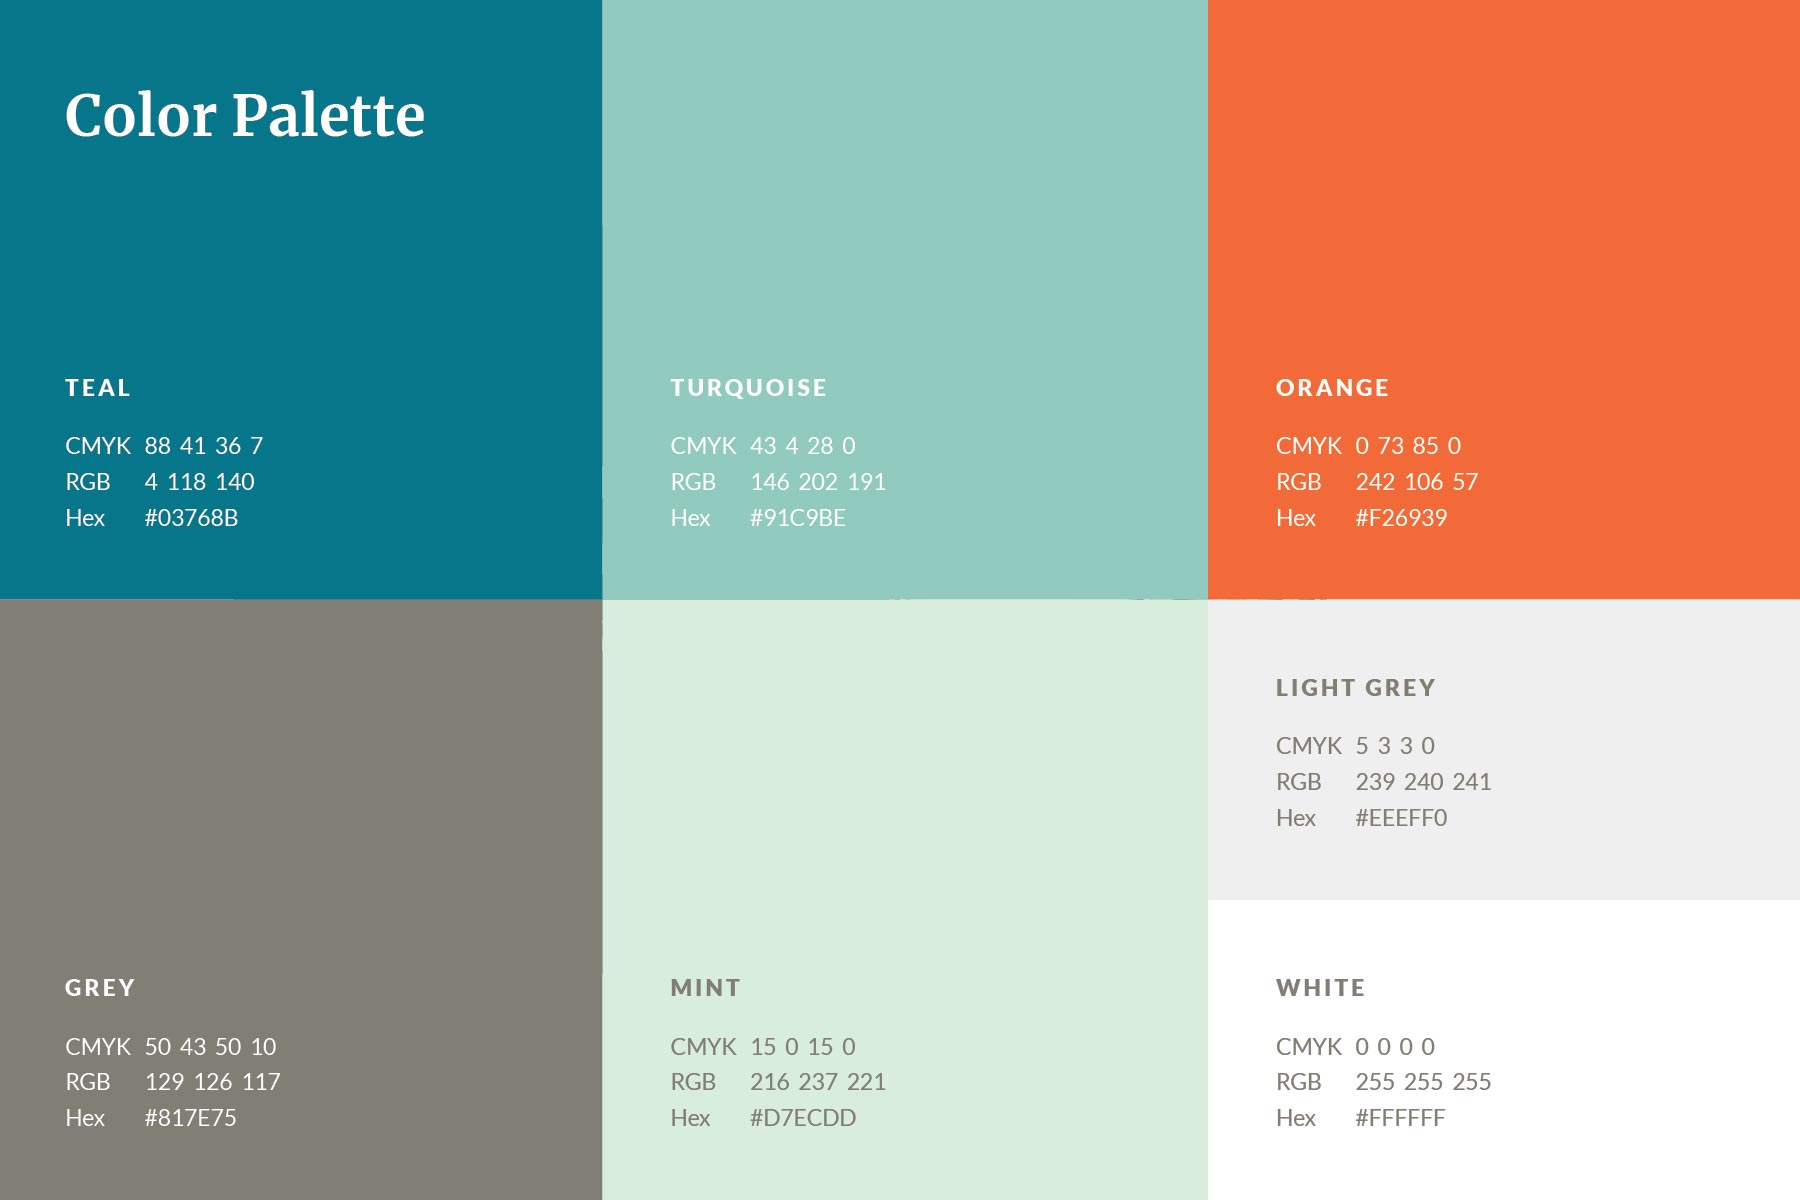 Brand colour palette of blue-greens and orange